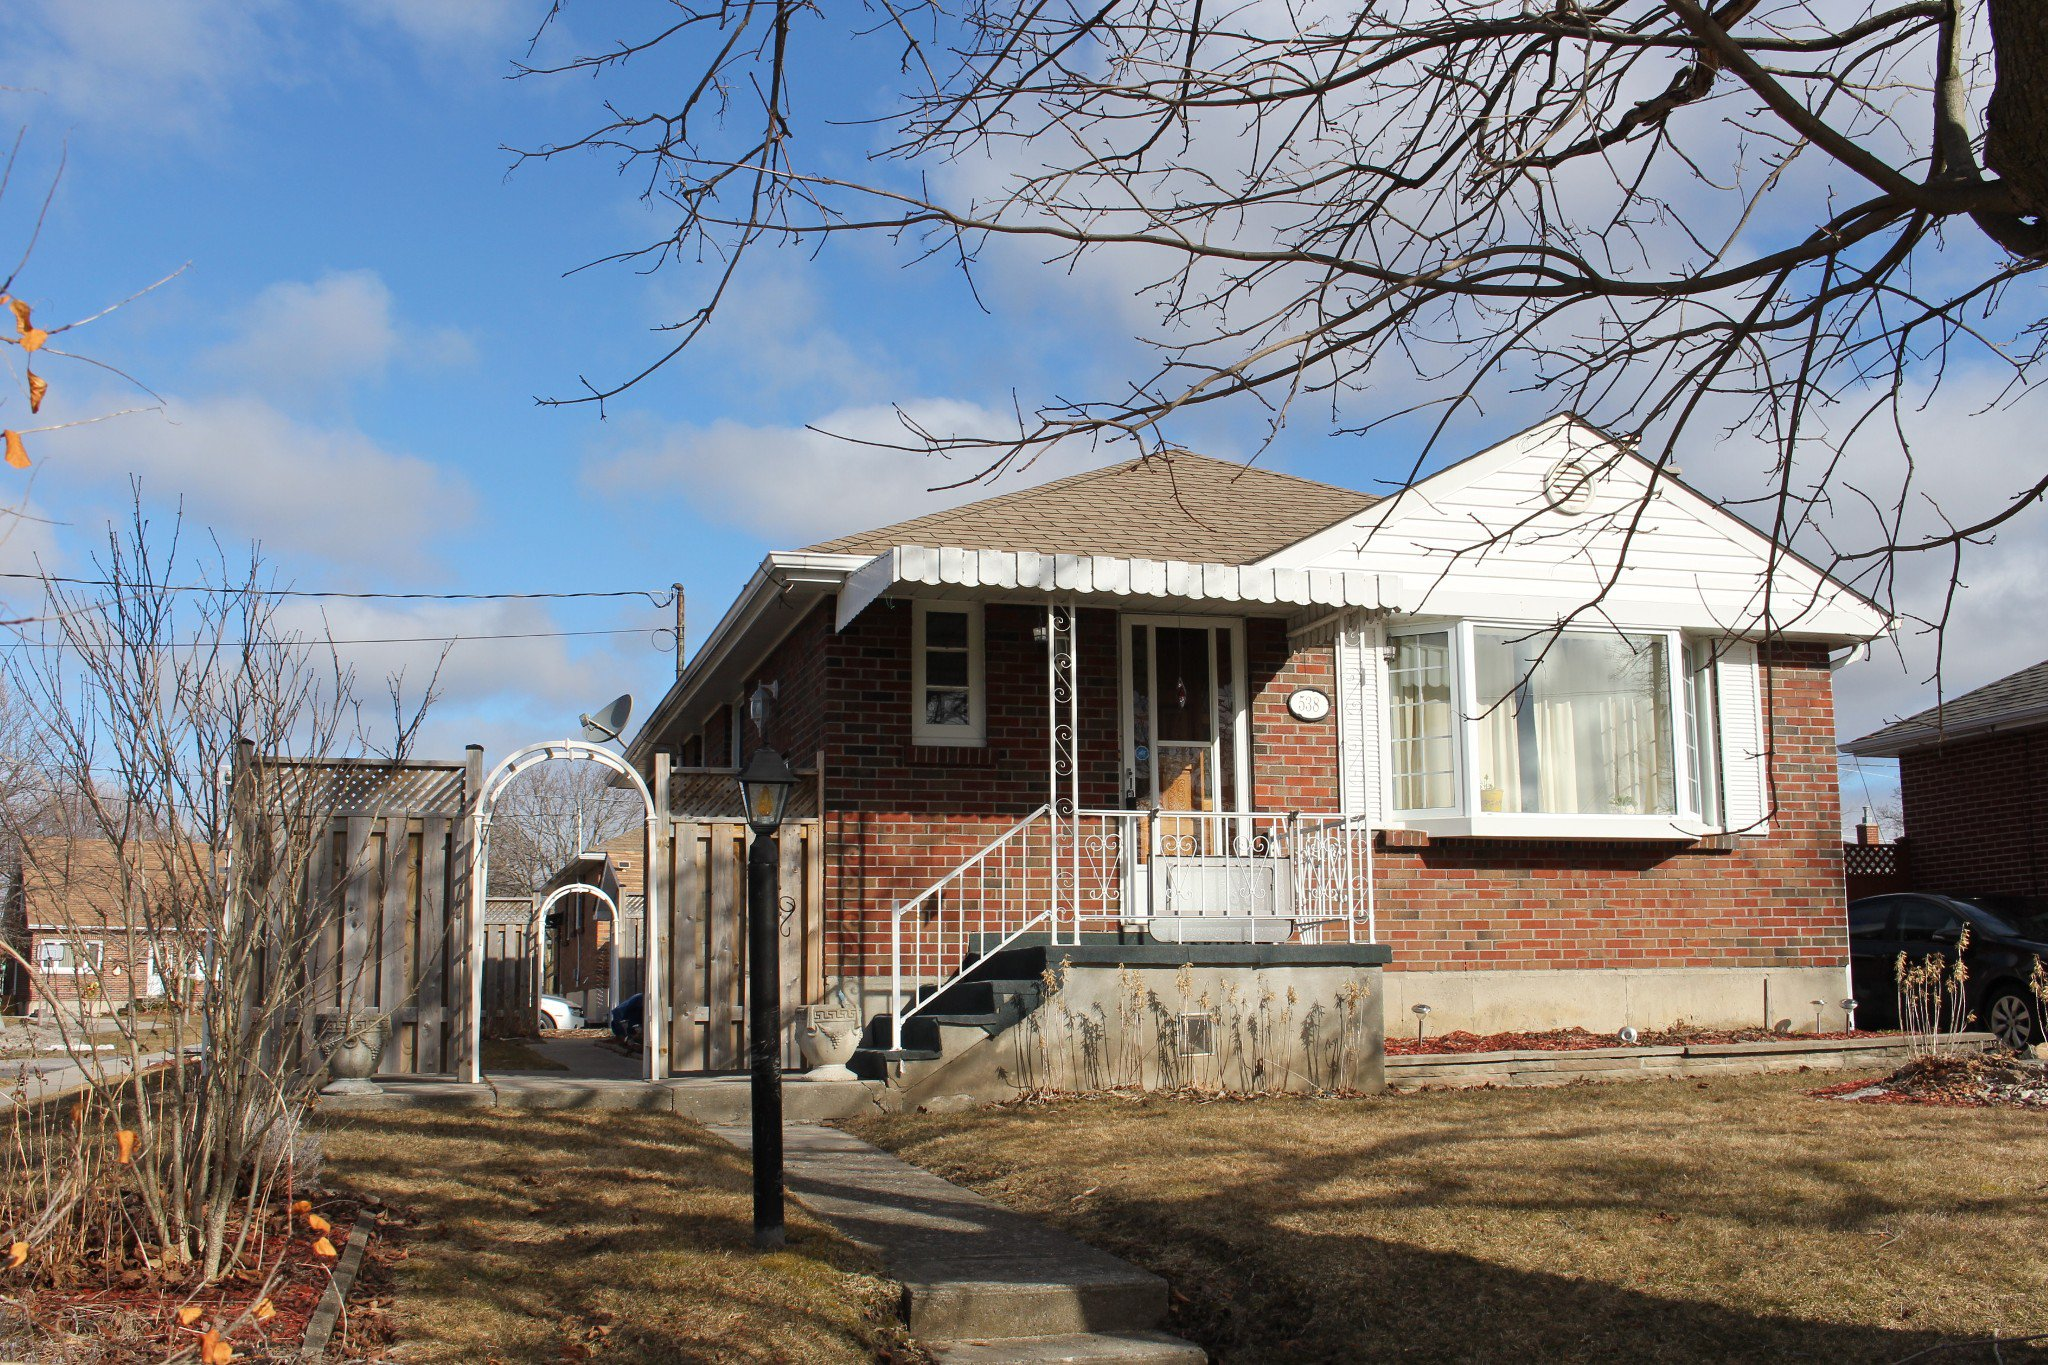 Main Photo: 538 Barbara Street in Cobourg: Residential Detached for sale : MLS®# 510870260